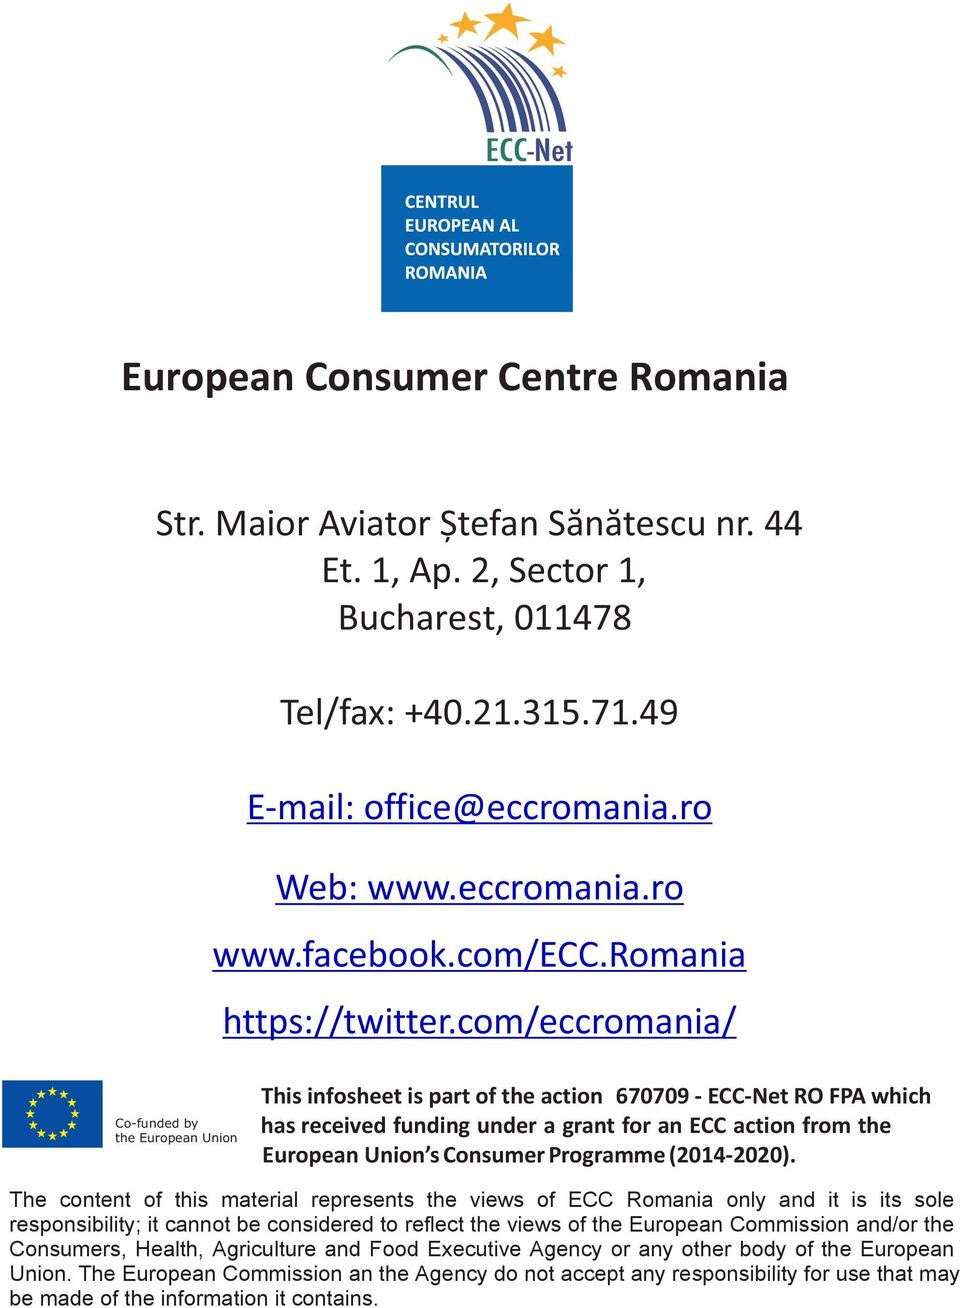 com/eccromania/ Co-funded by the European Union This infosheet is part of the action 670709 - ECC-Net RO FPA which has received funding under a grant for an ECC action from the European Union s